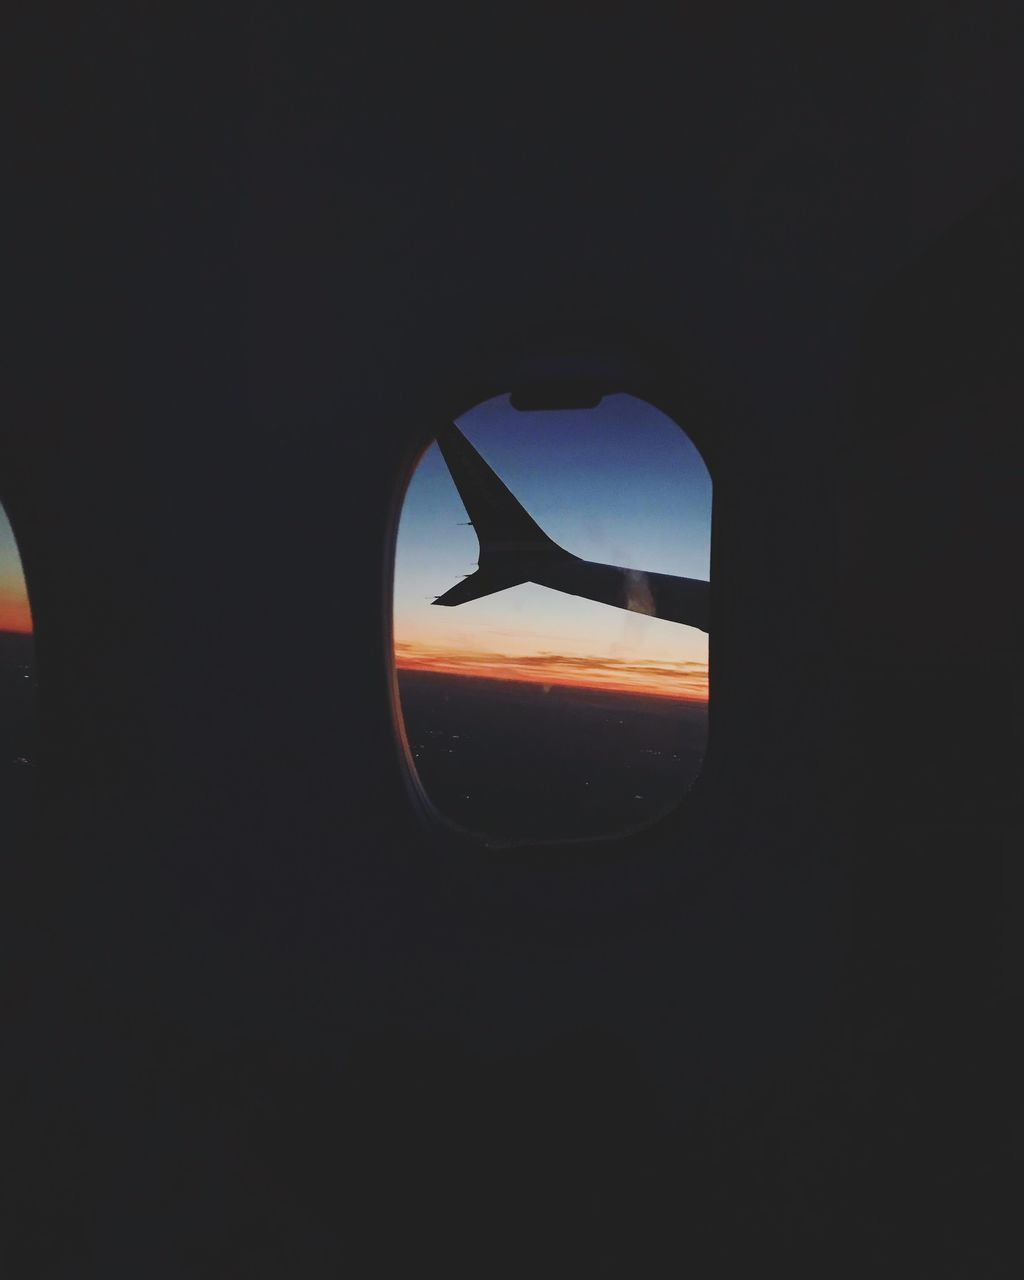 mode of transportation, vehicle interior, transportation, sky, sunset, glass - material, copy space, airplane, transparent, window, public transportation, air vehicle, orange color, one person, silhouette, indoors, land vehicle, illuminated, nature, dark